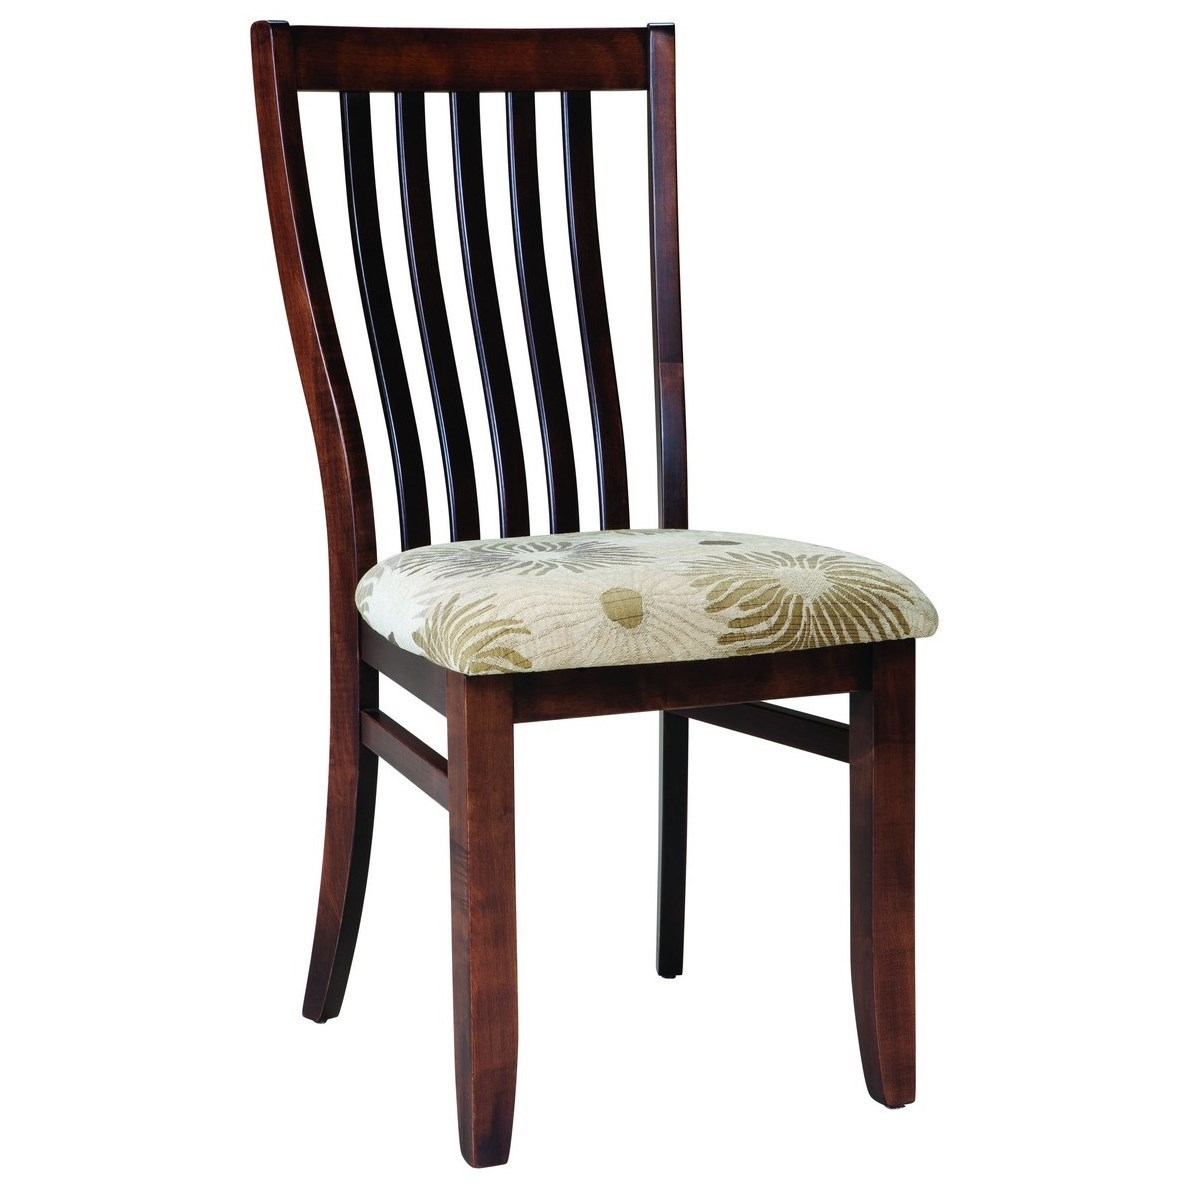 Lifestyles Lite Dining Landon Side Chair by Palettes by Winesburg at Dinette Depot